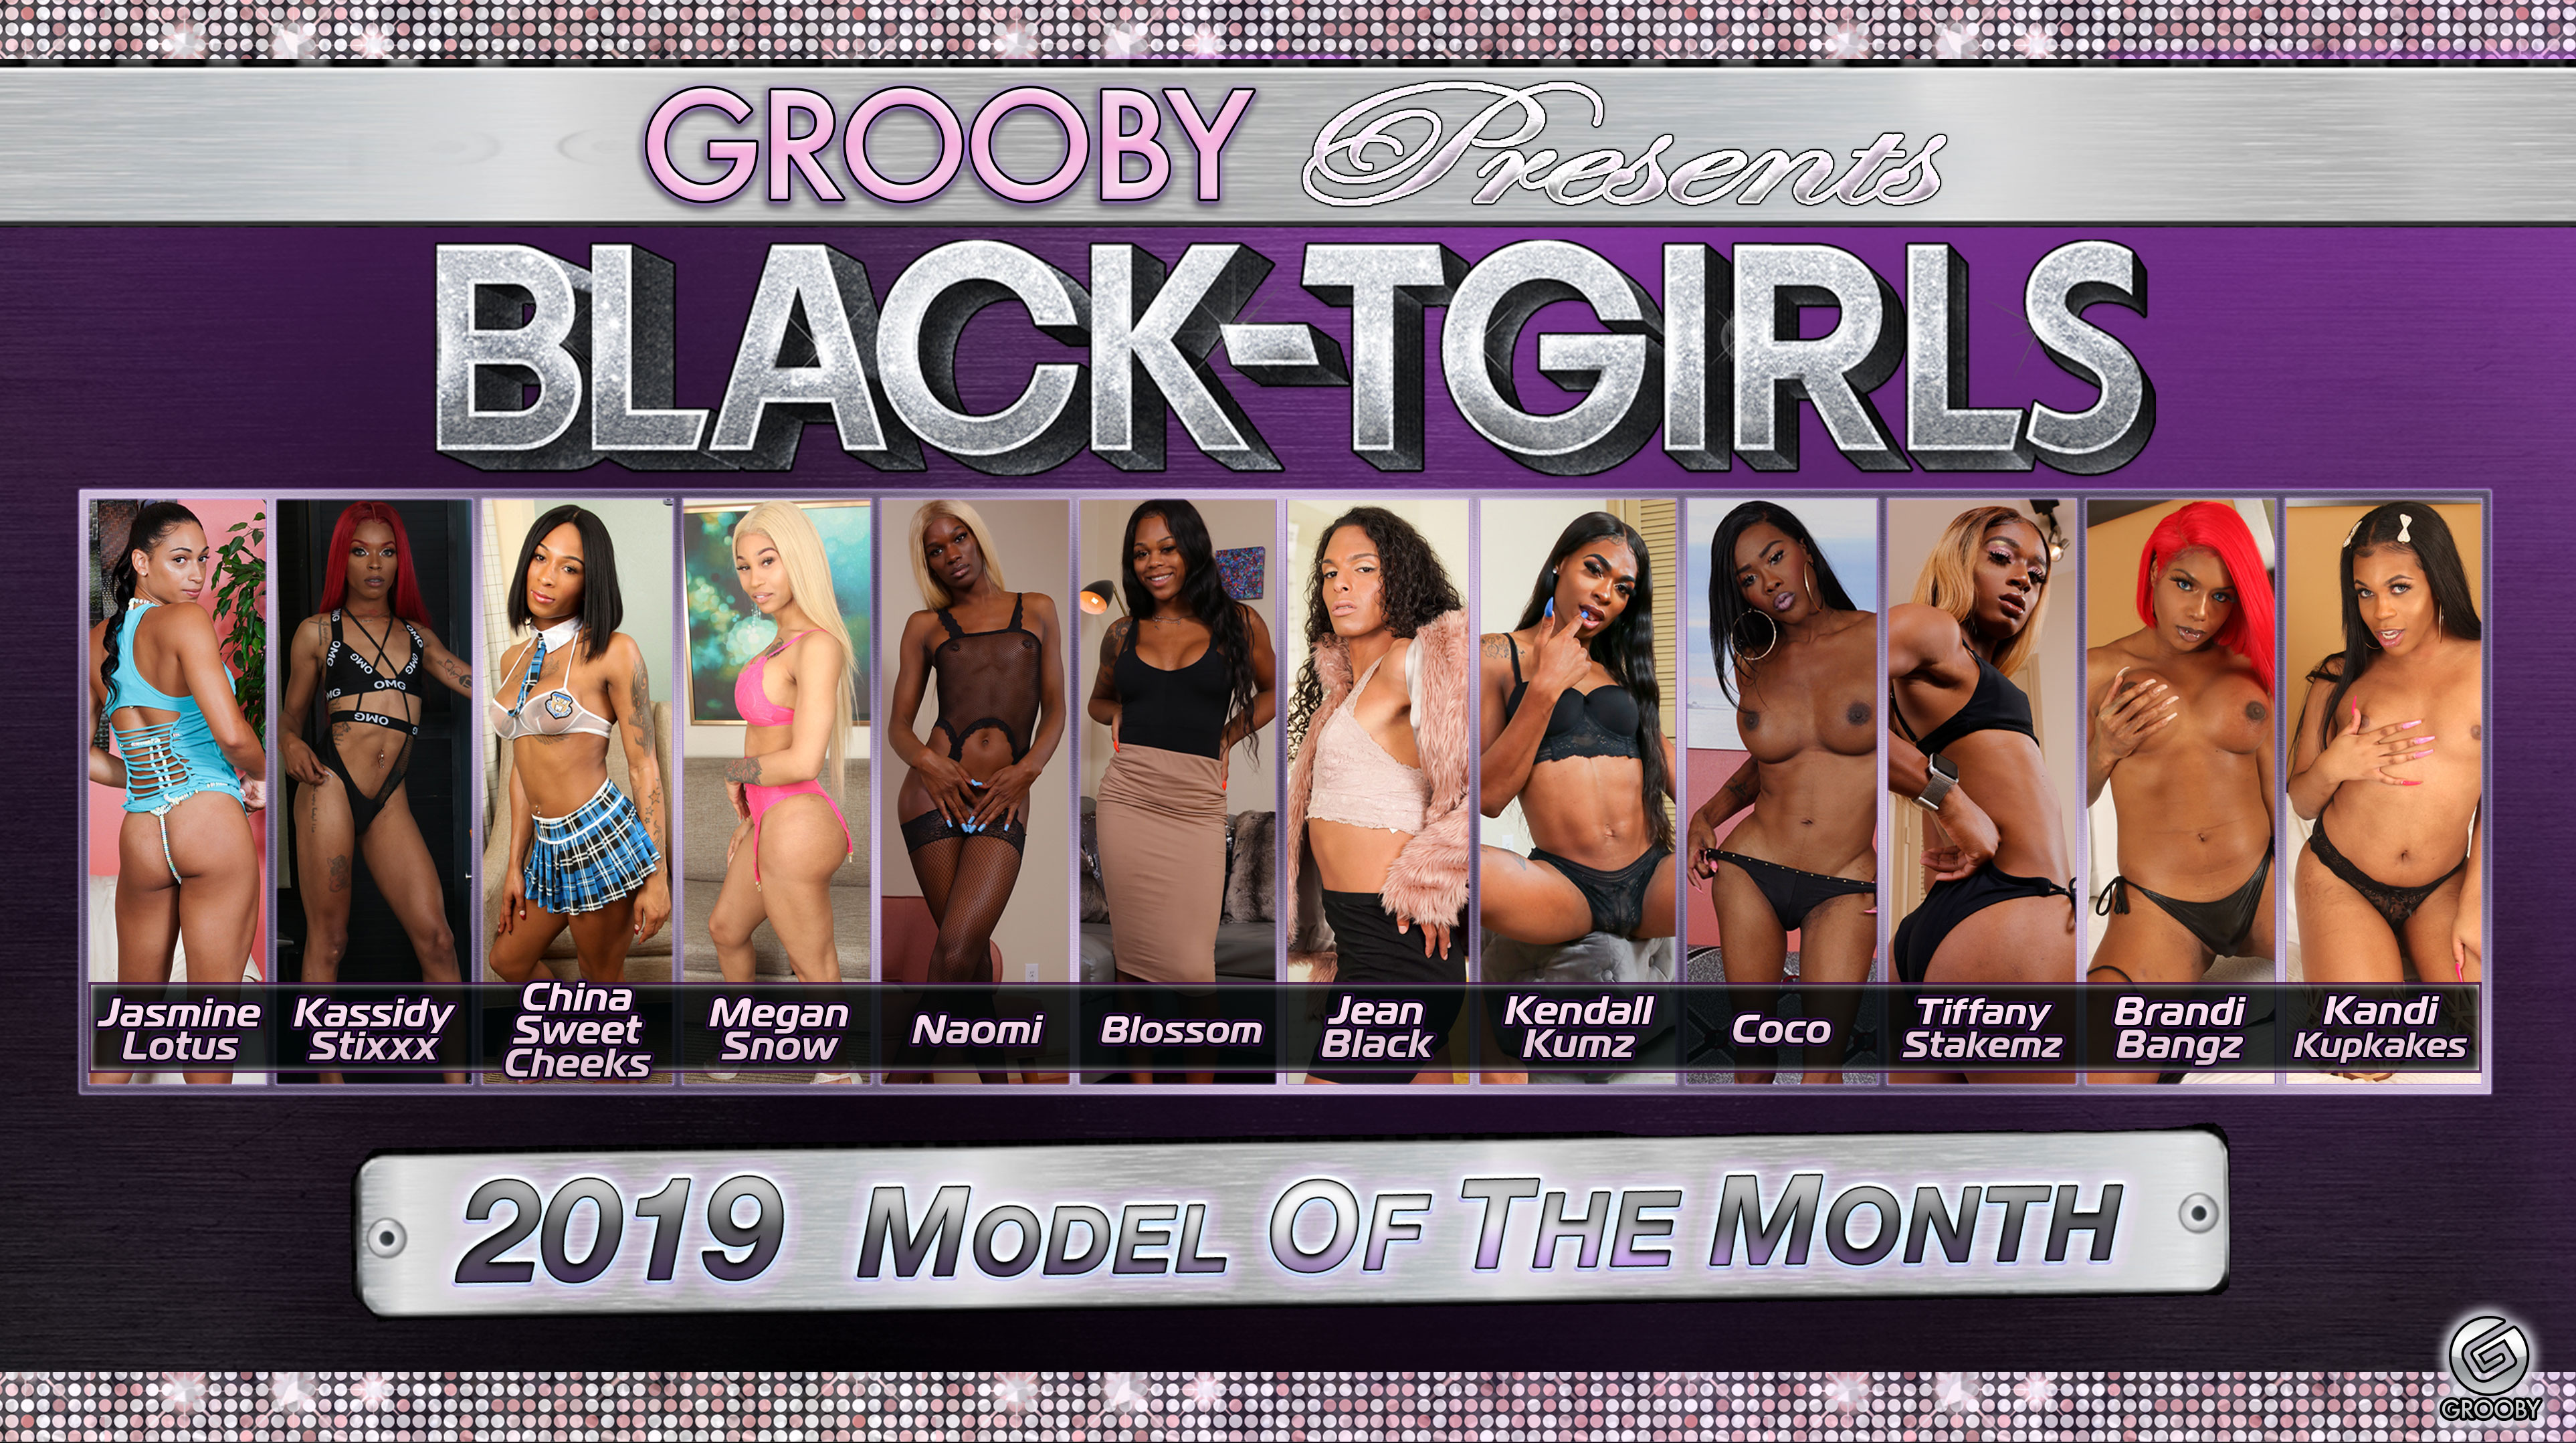 Black-Tgirls 2019 Model of the Month DVD Trailer